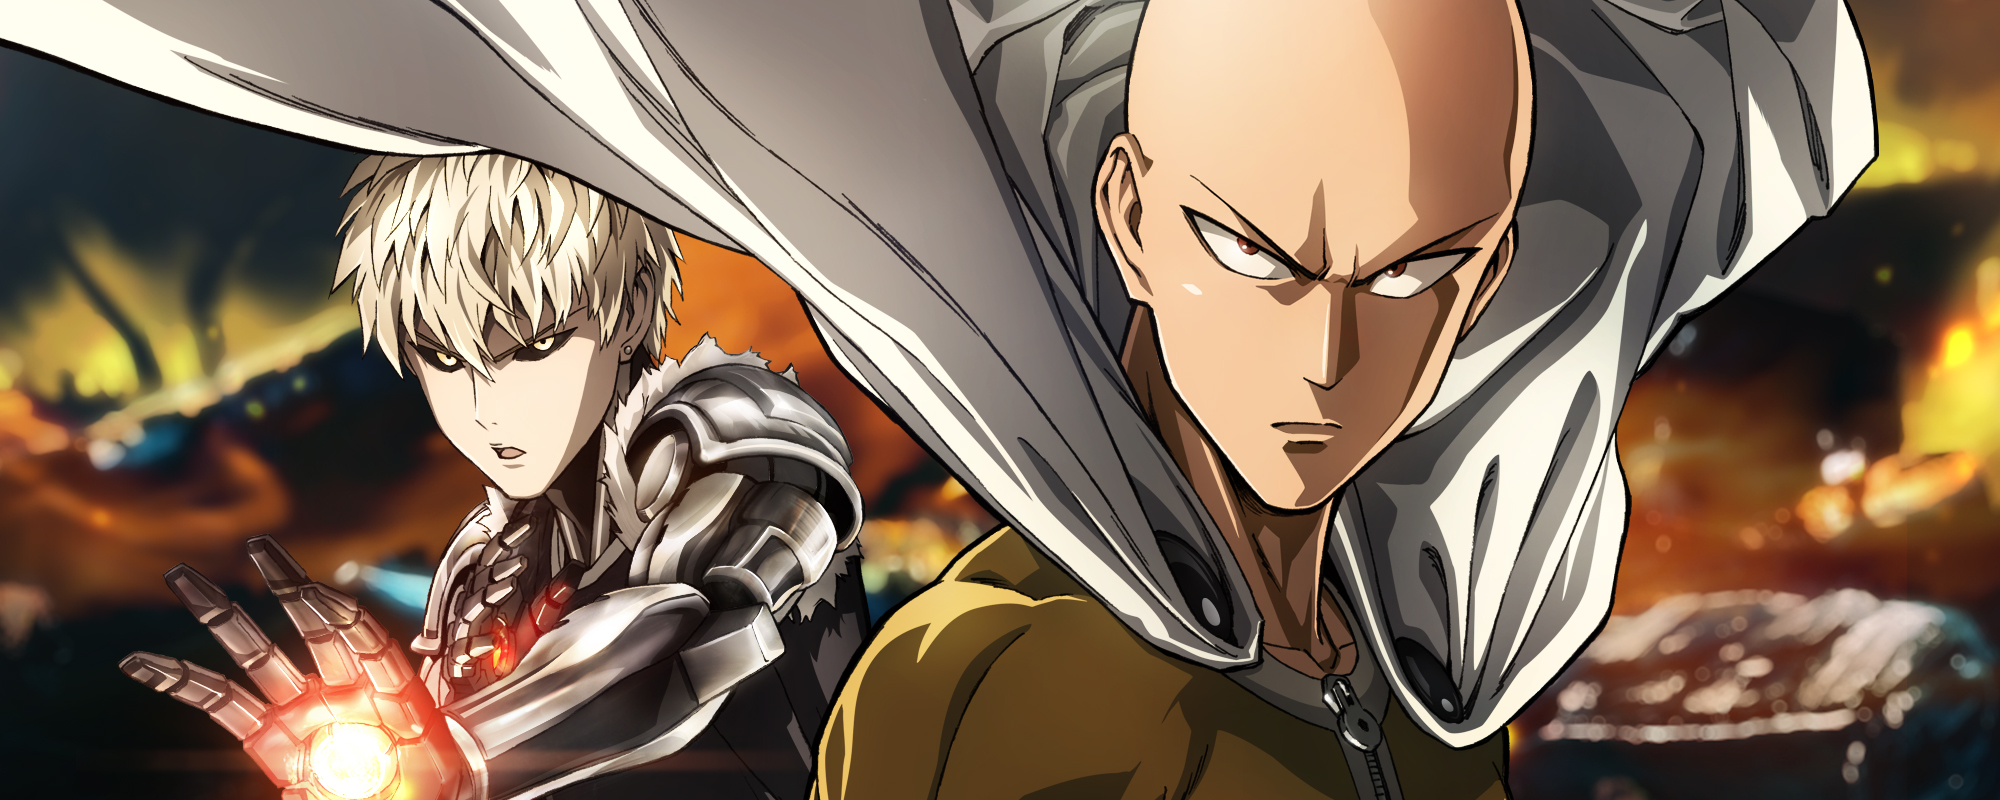 One Punch Man Is A Perfect Anime For Newcomers Film